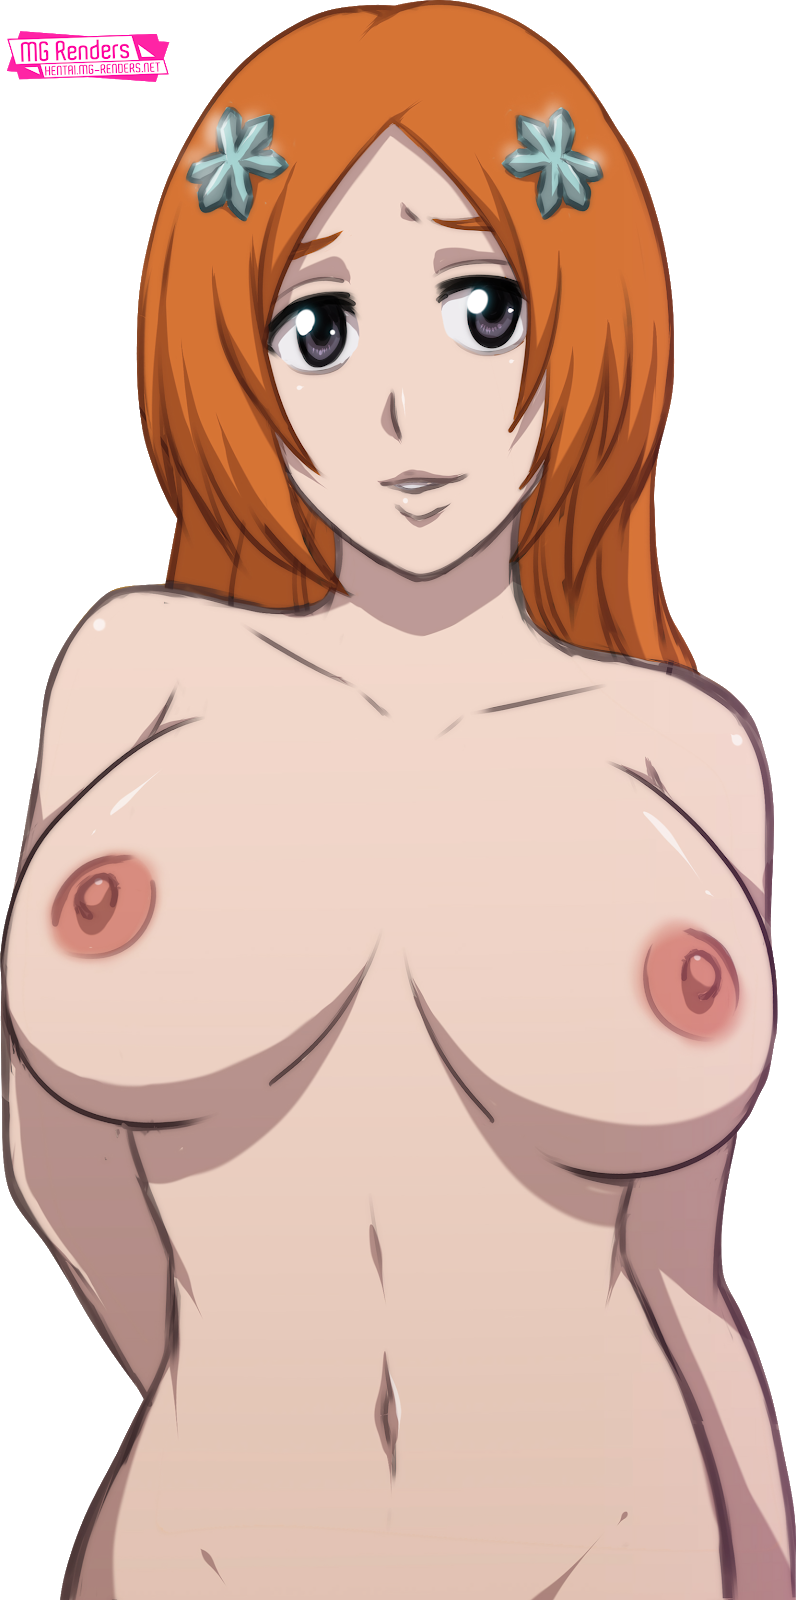 Tags: Anime, Render,  Bare shoulders,  BLEACH,  Huge Breasts,  Inoue Orihime,  Navel,  Nipples,  No bra,  PNG, Image, Picture